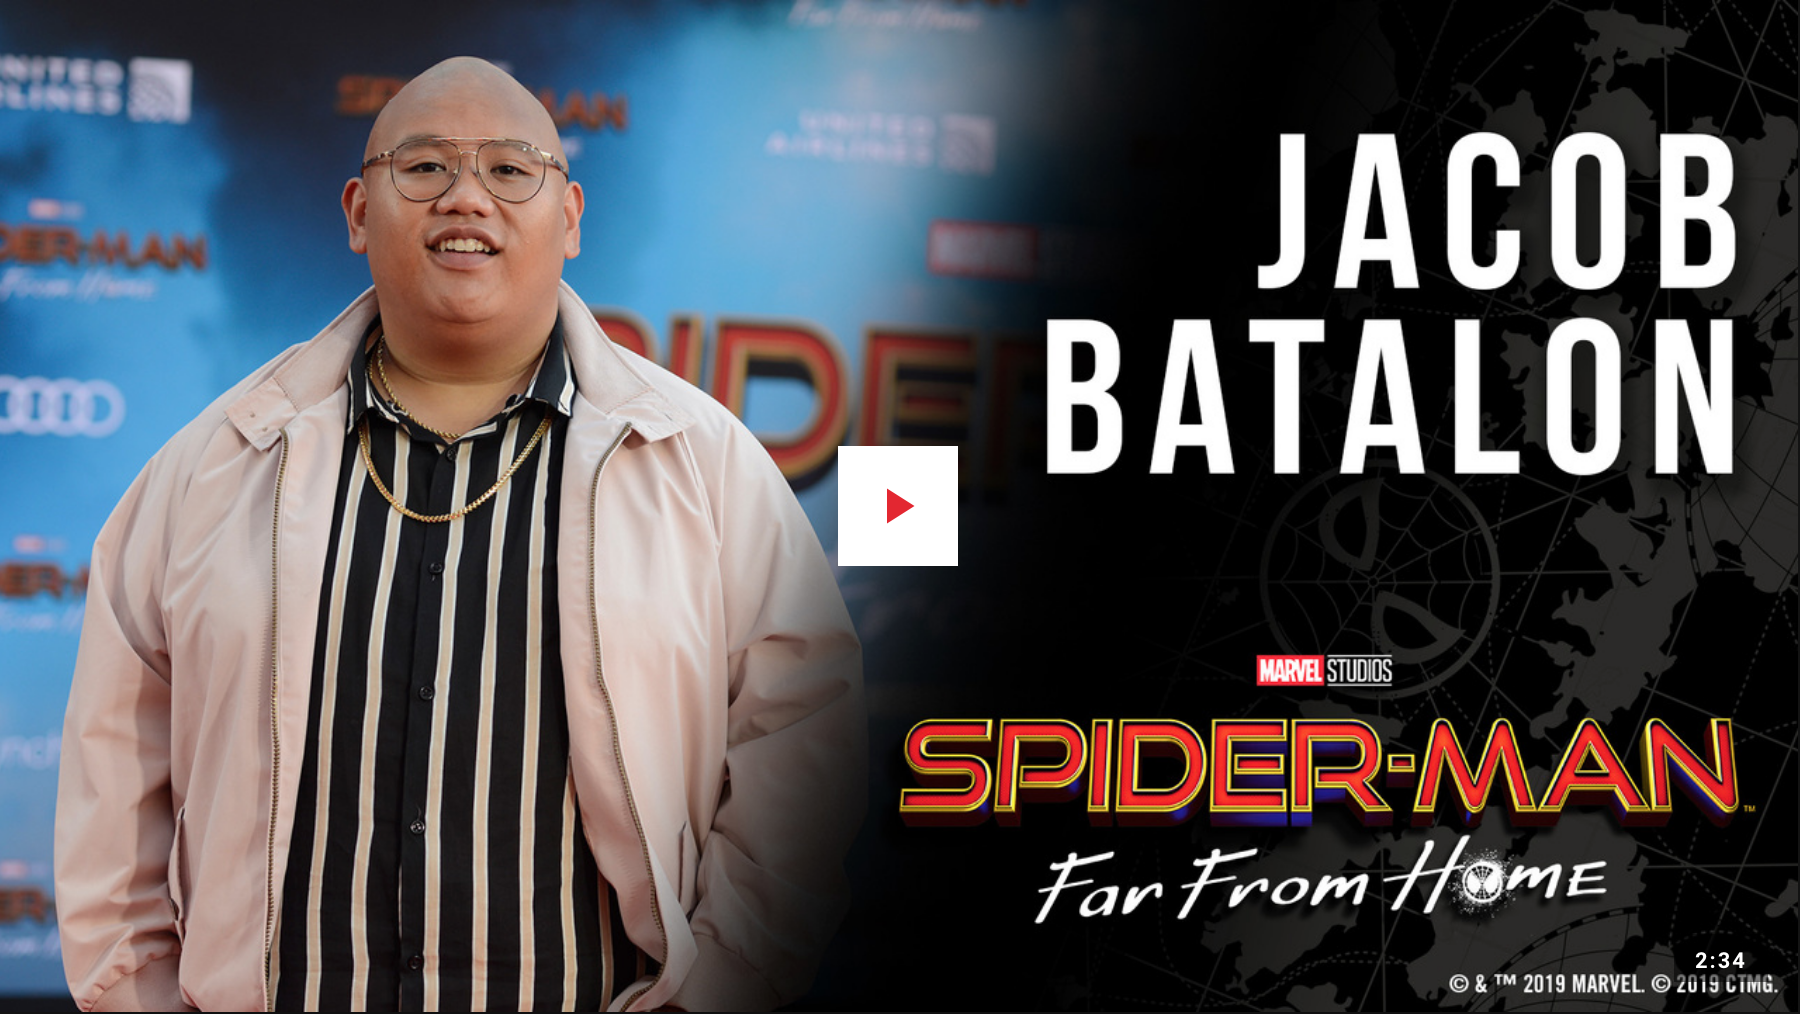 Click on the image to view Jacob Batalon's interview at the premiere.  Image from marvel.com